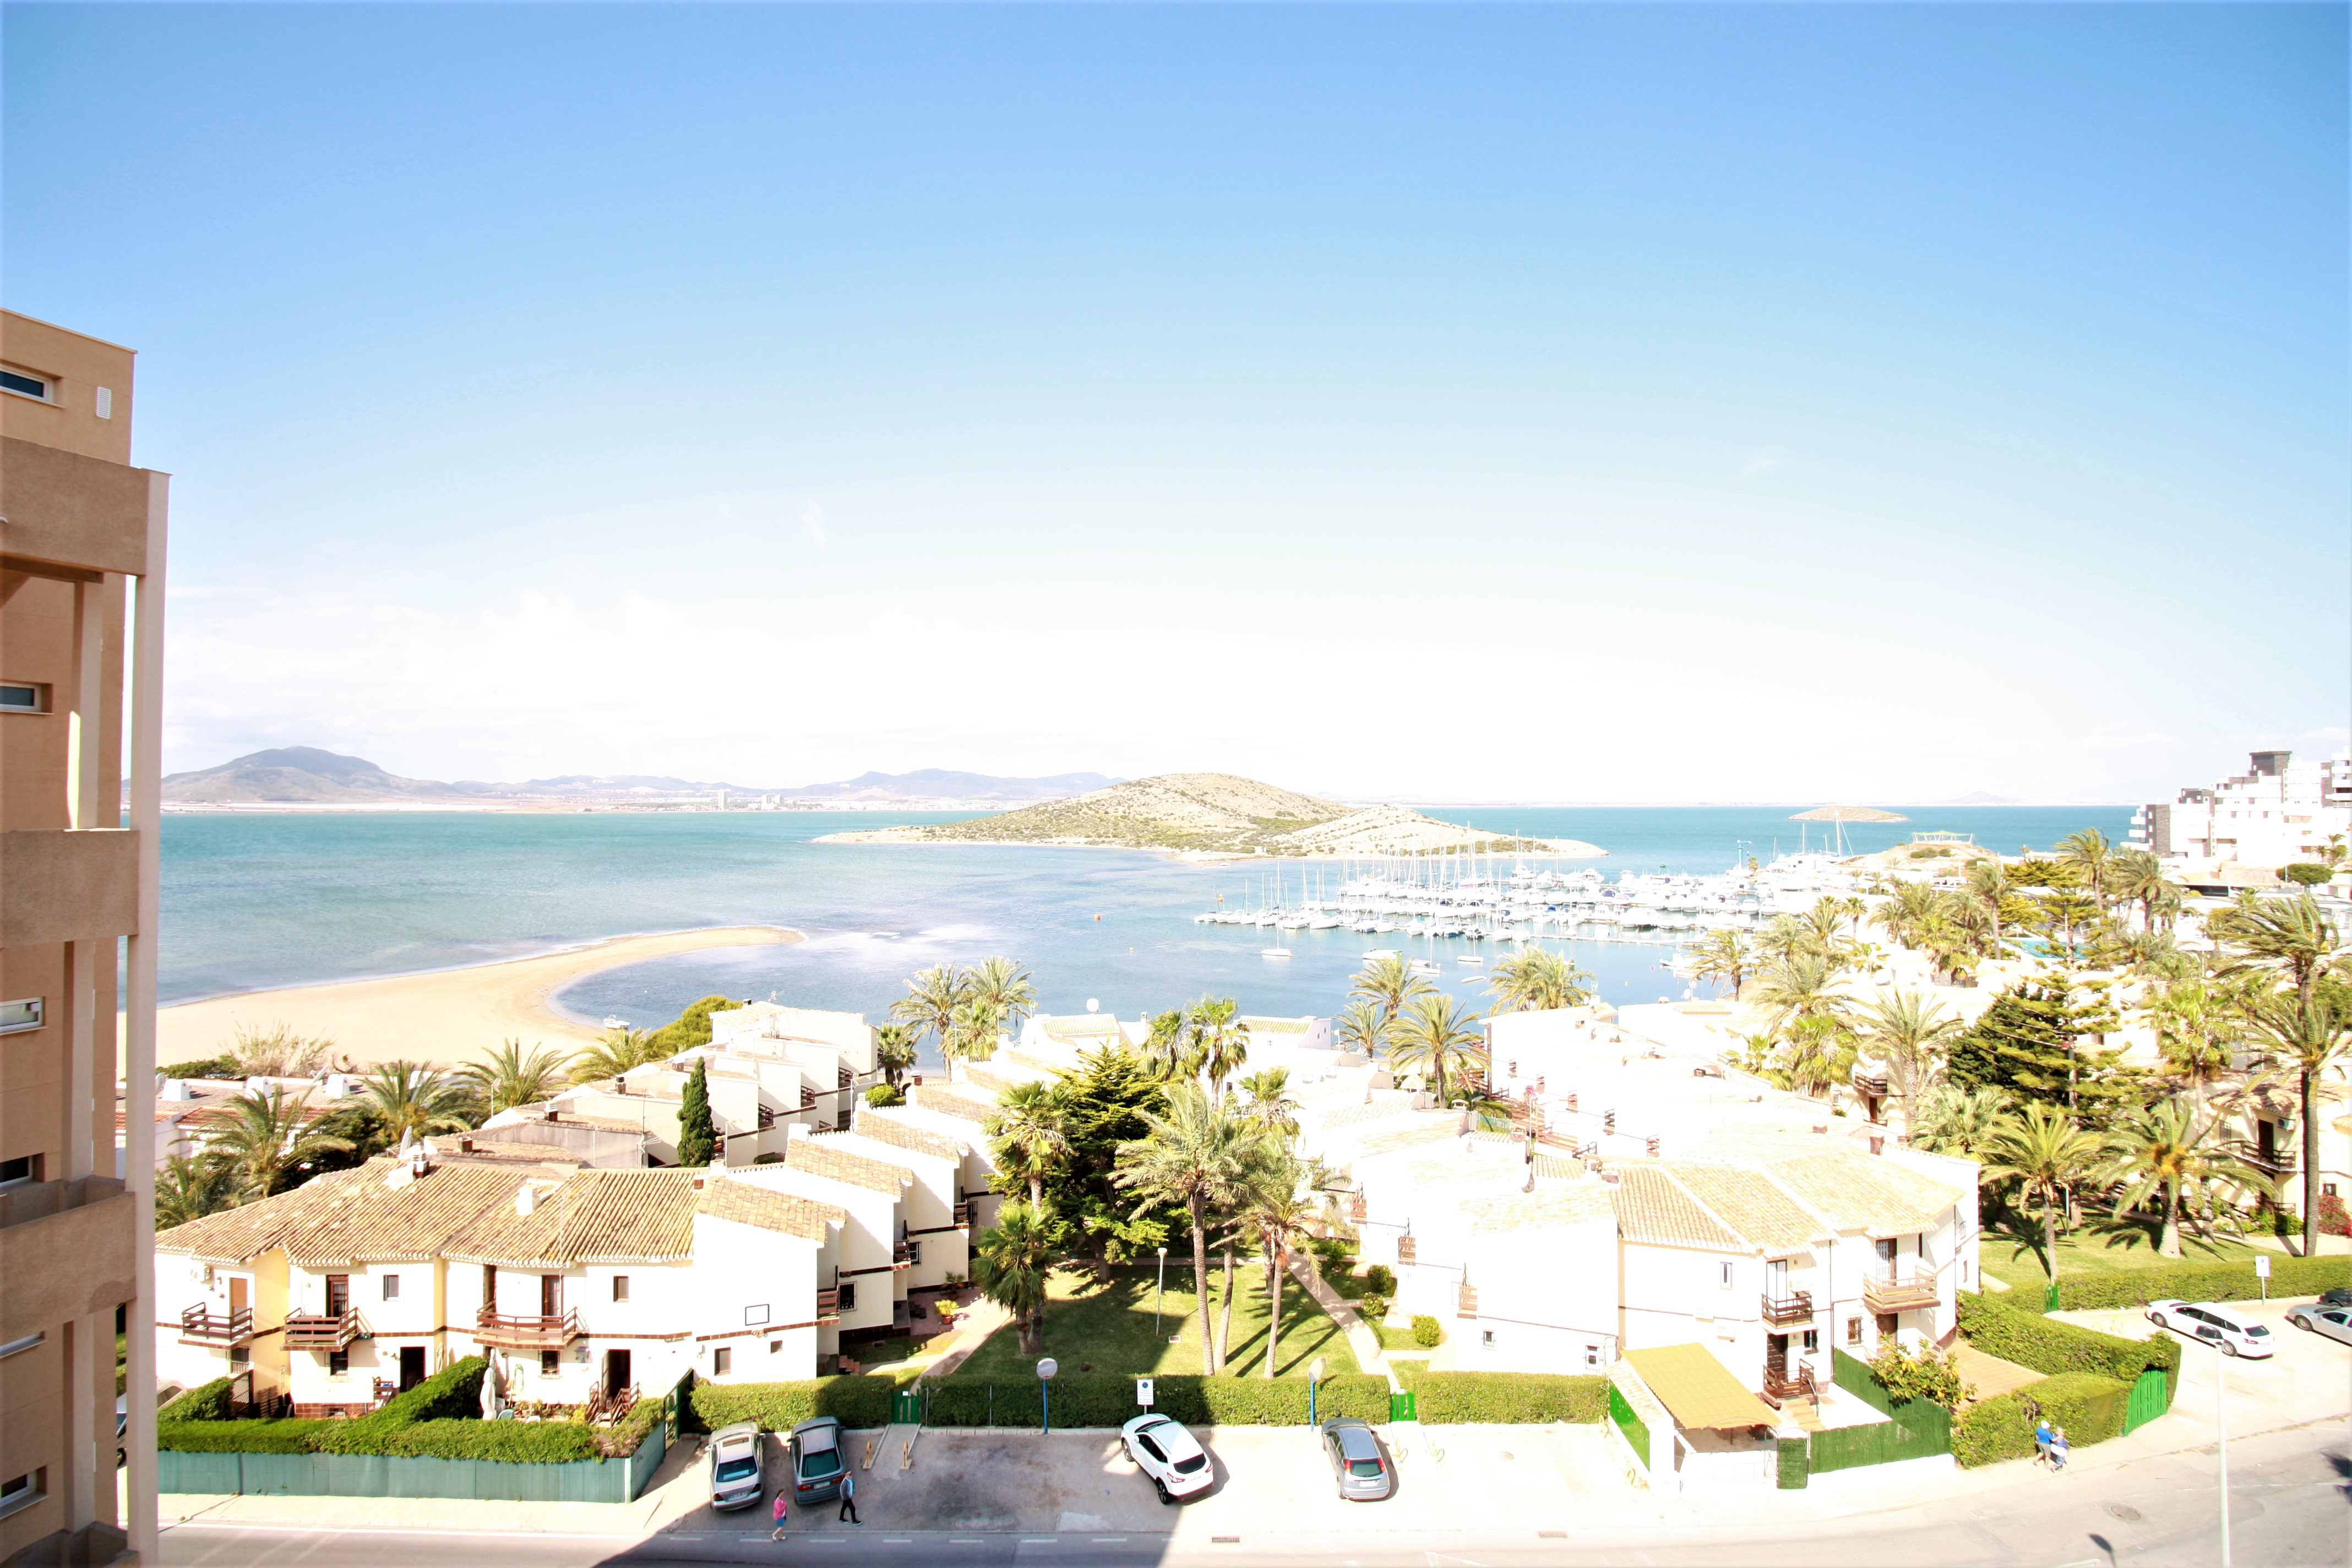 Renovated apartment with west facing views to the Mar Menor